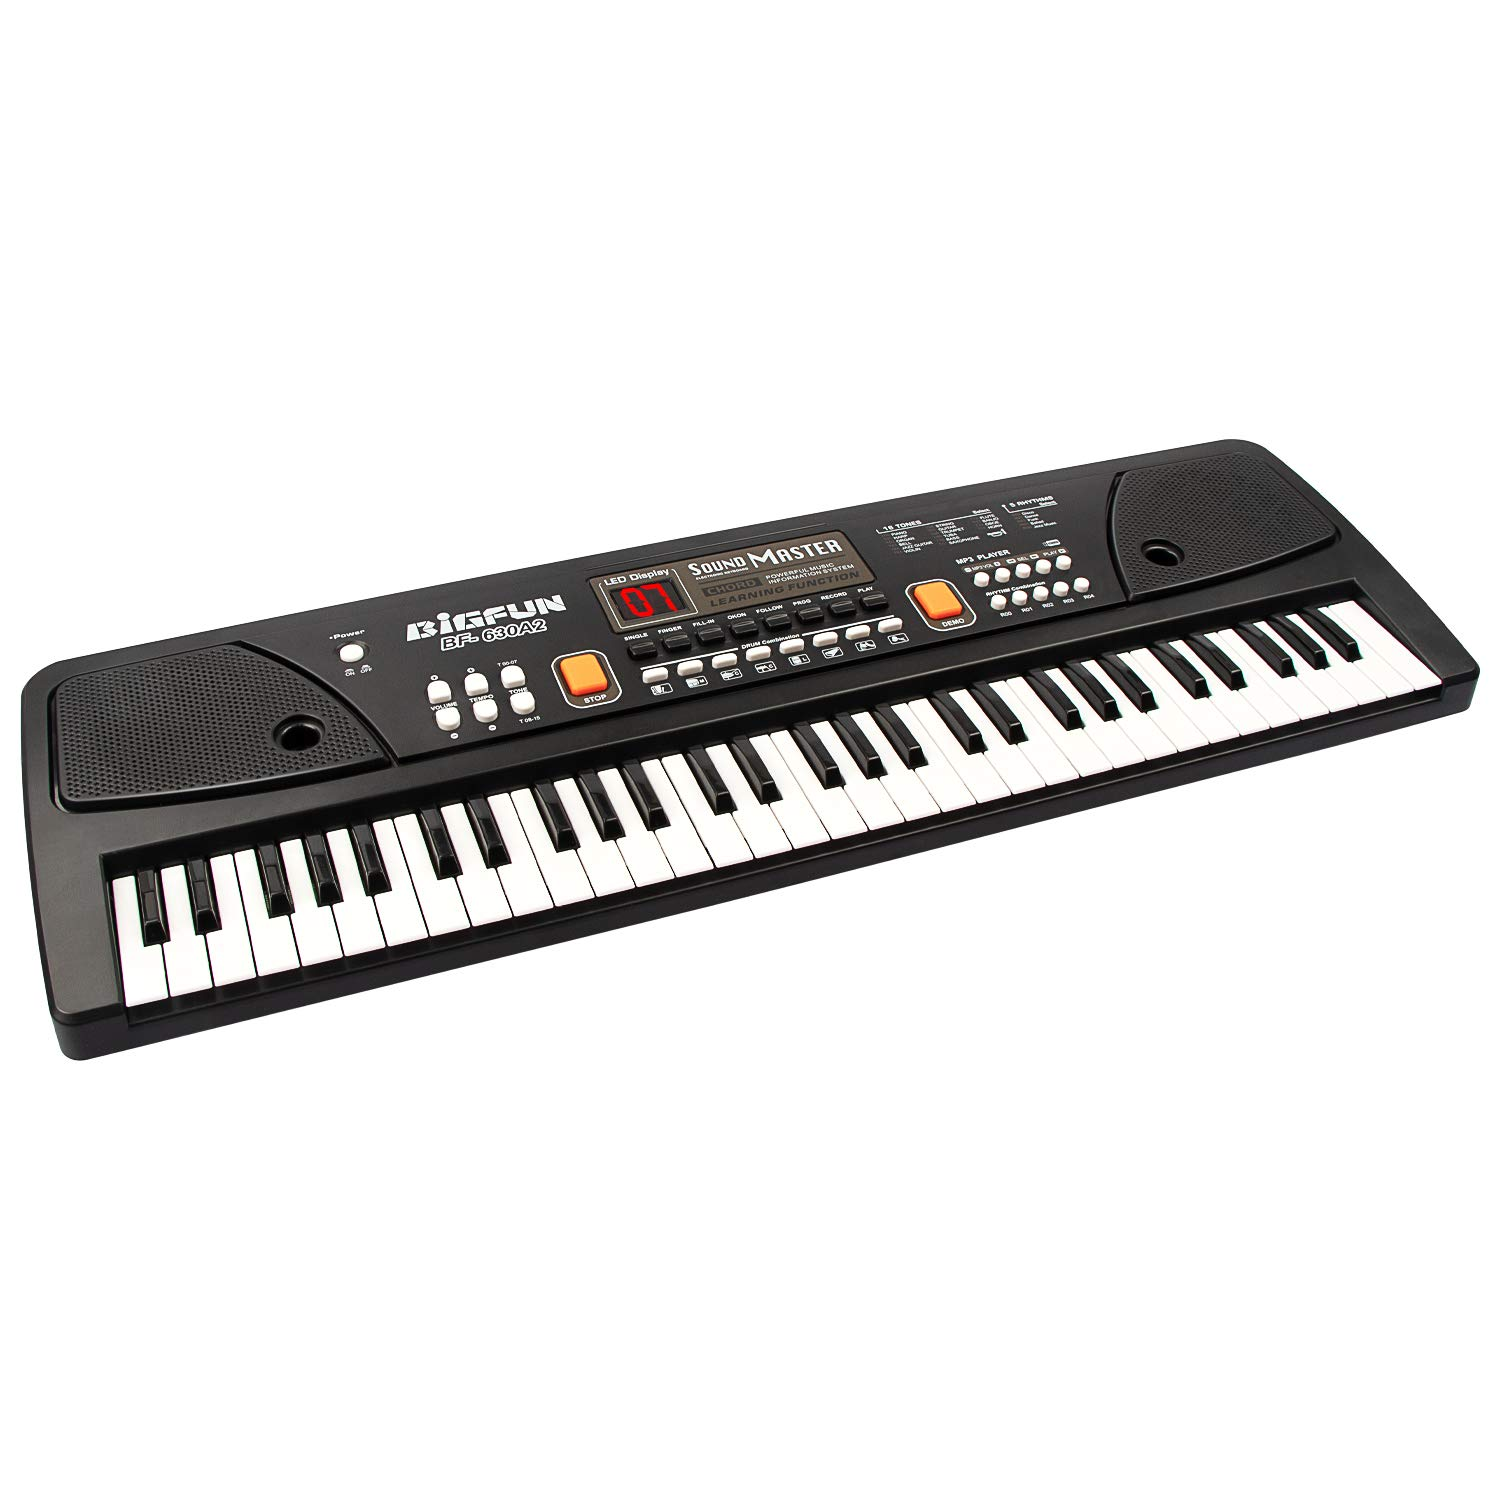 aPerfectLife 61 Keys Piano Keyboard for Kids Multifunction Portable Piano Electronic Keyboard Music Instrument for Kids Early Learning Educational Toy (Black) by aPerfectLife